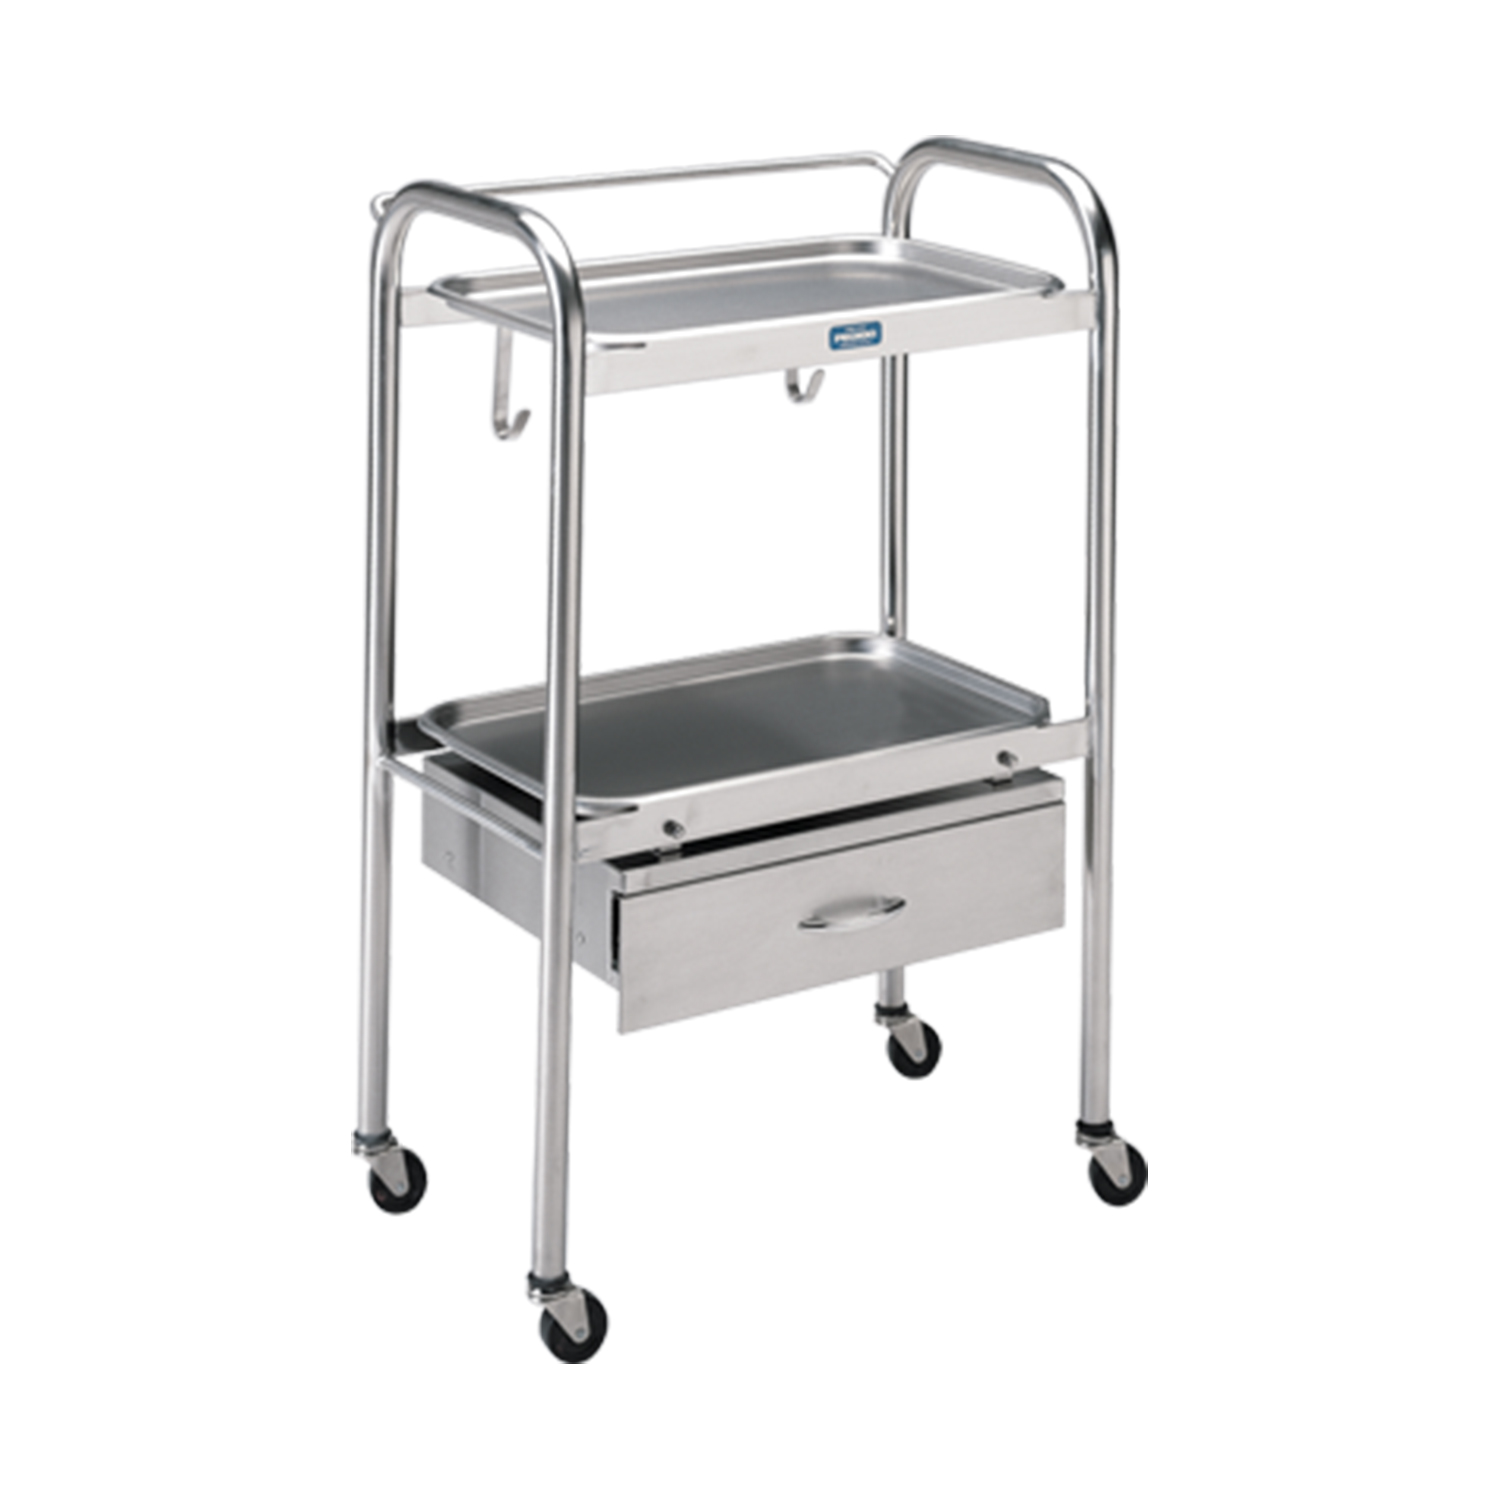 Accessory: Pedigo Anesthetist Carts and Cabinets